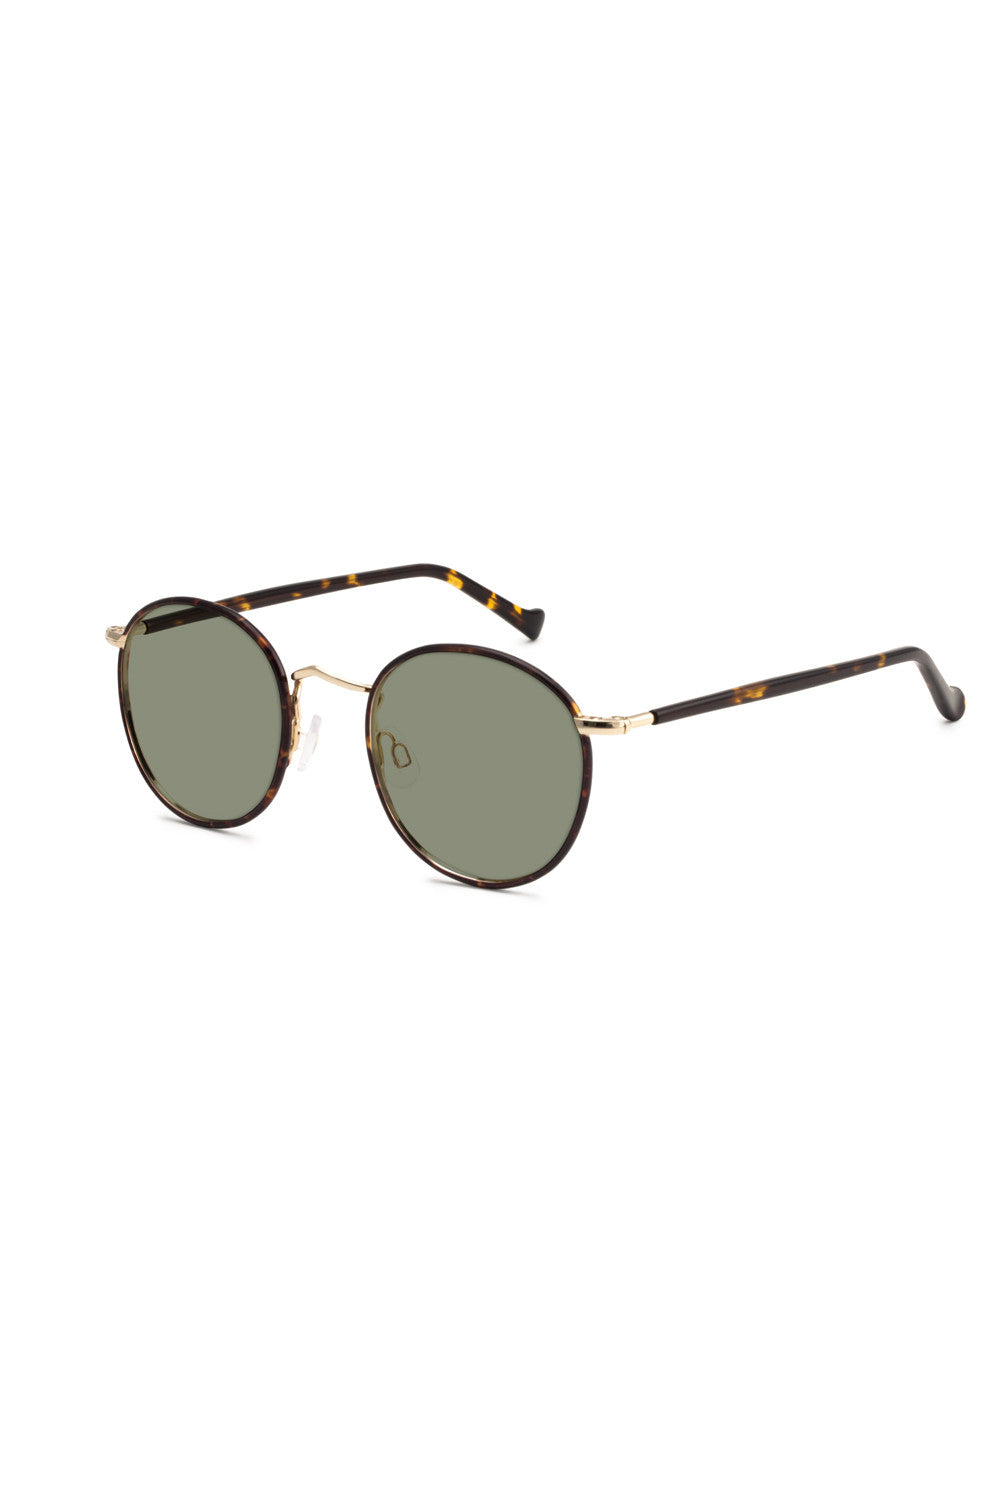 39e917e28a Moscot Sunglasses   Eyewear NZ - BLACKBOXBOUTIQUE